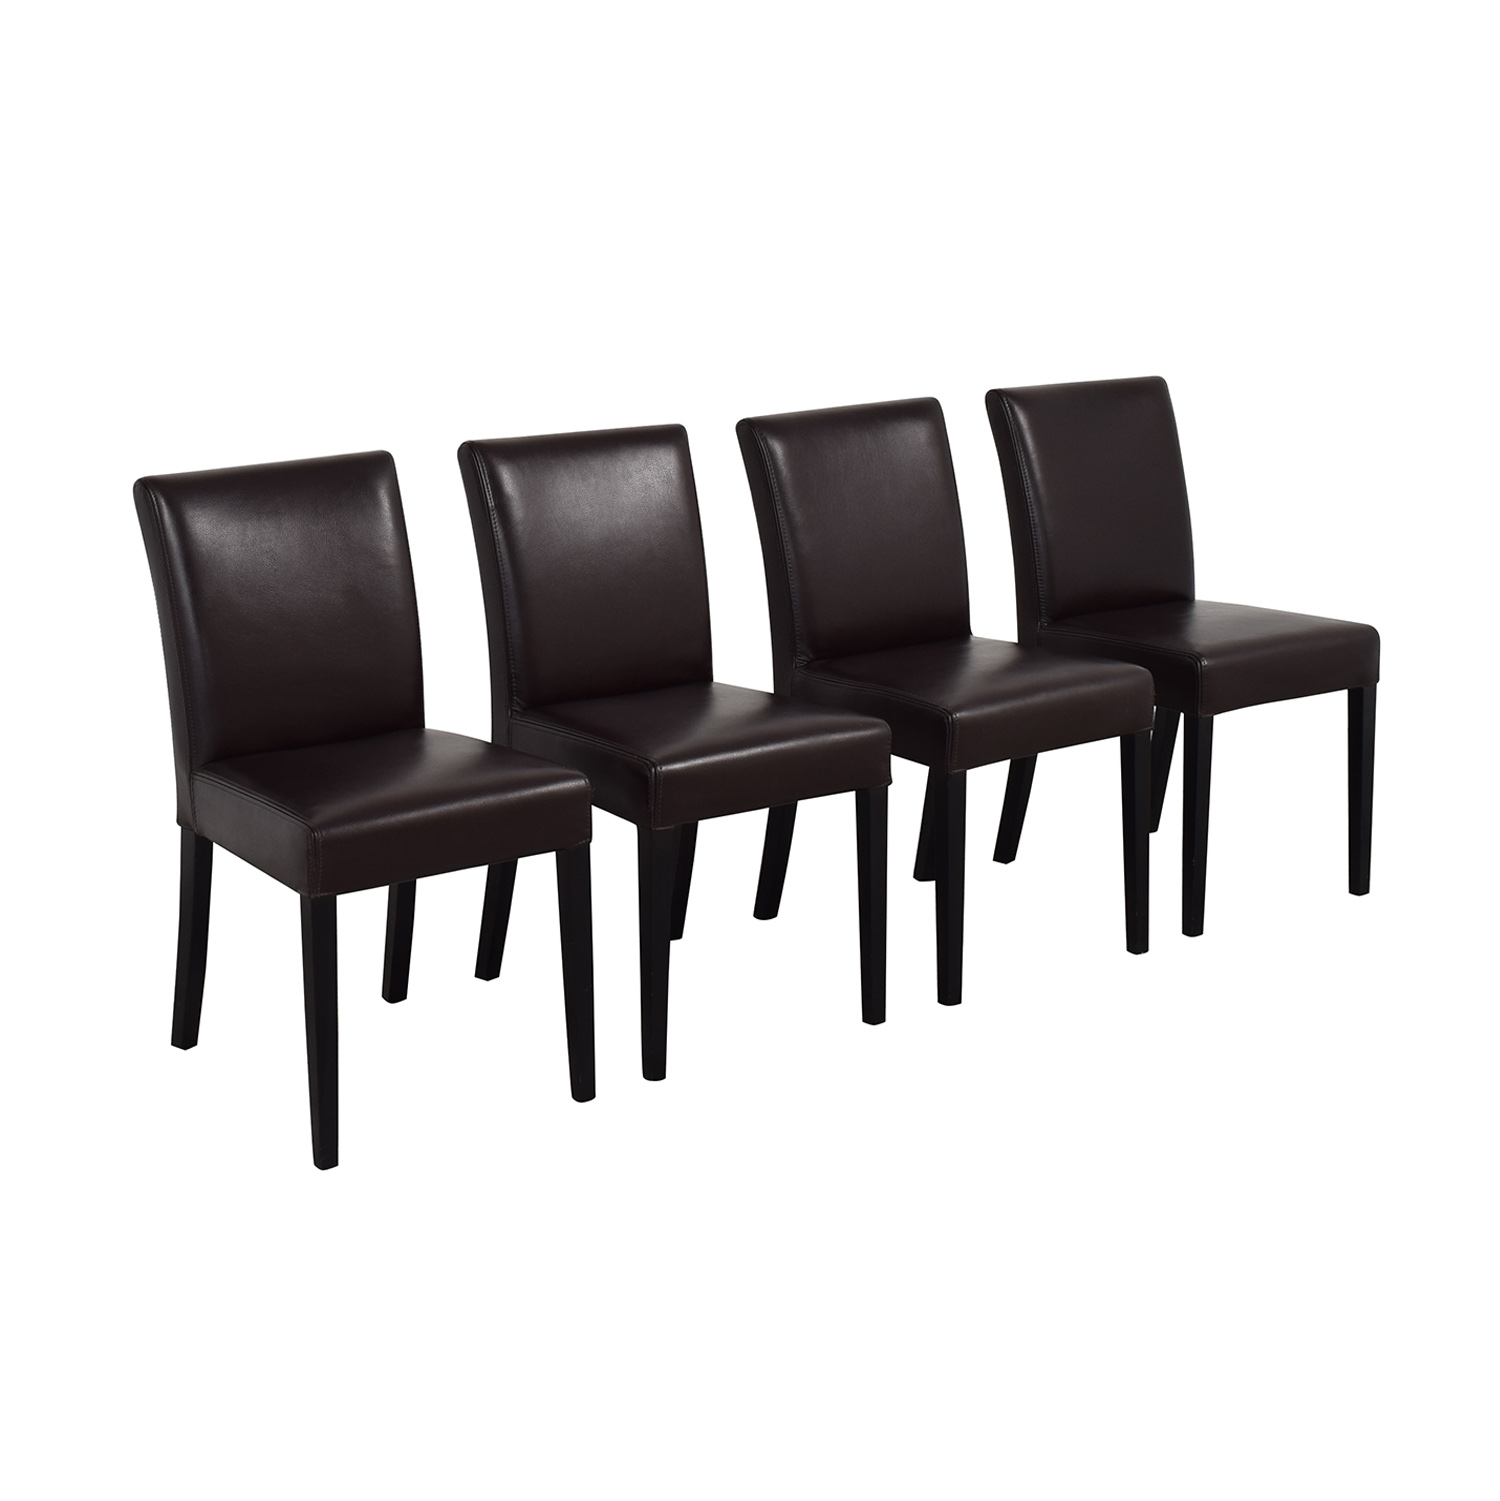 Crate & Barrel Crate & Barrel Lowe Dining Chairs nj